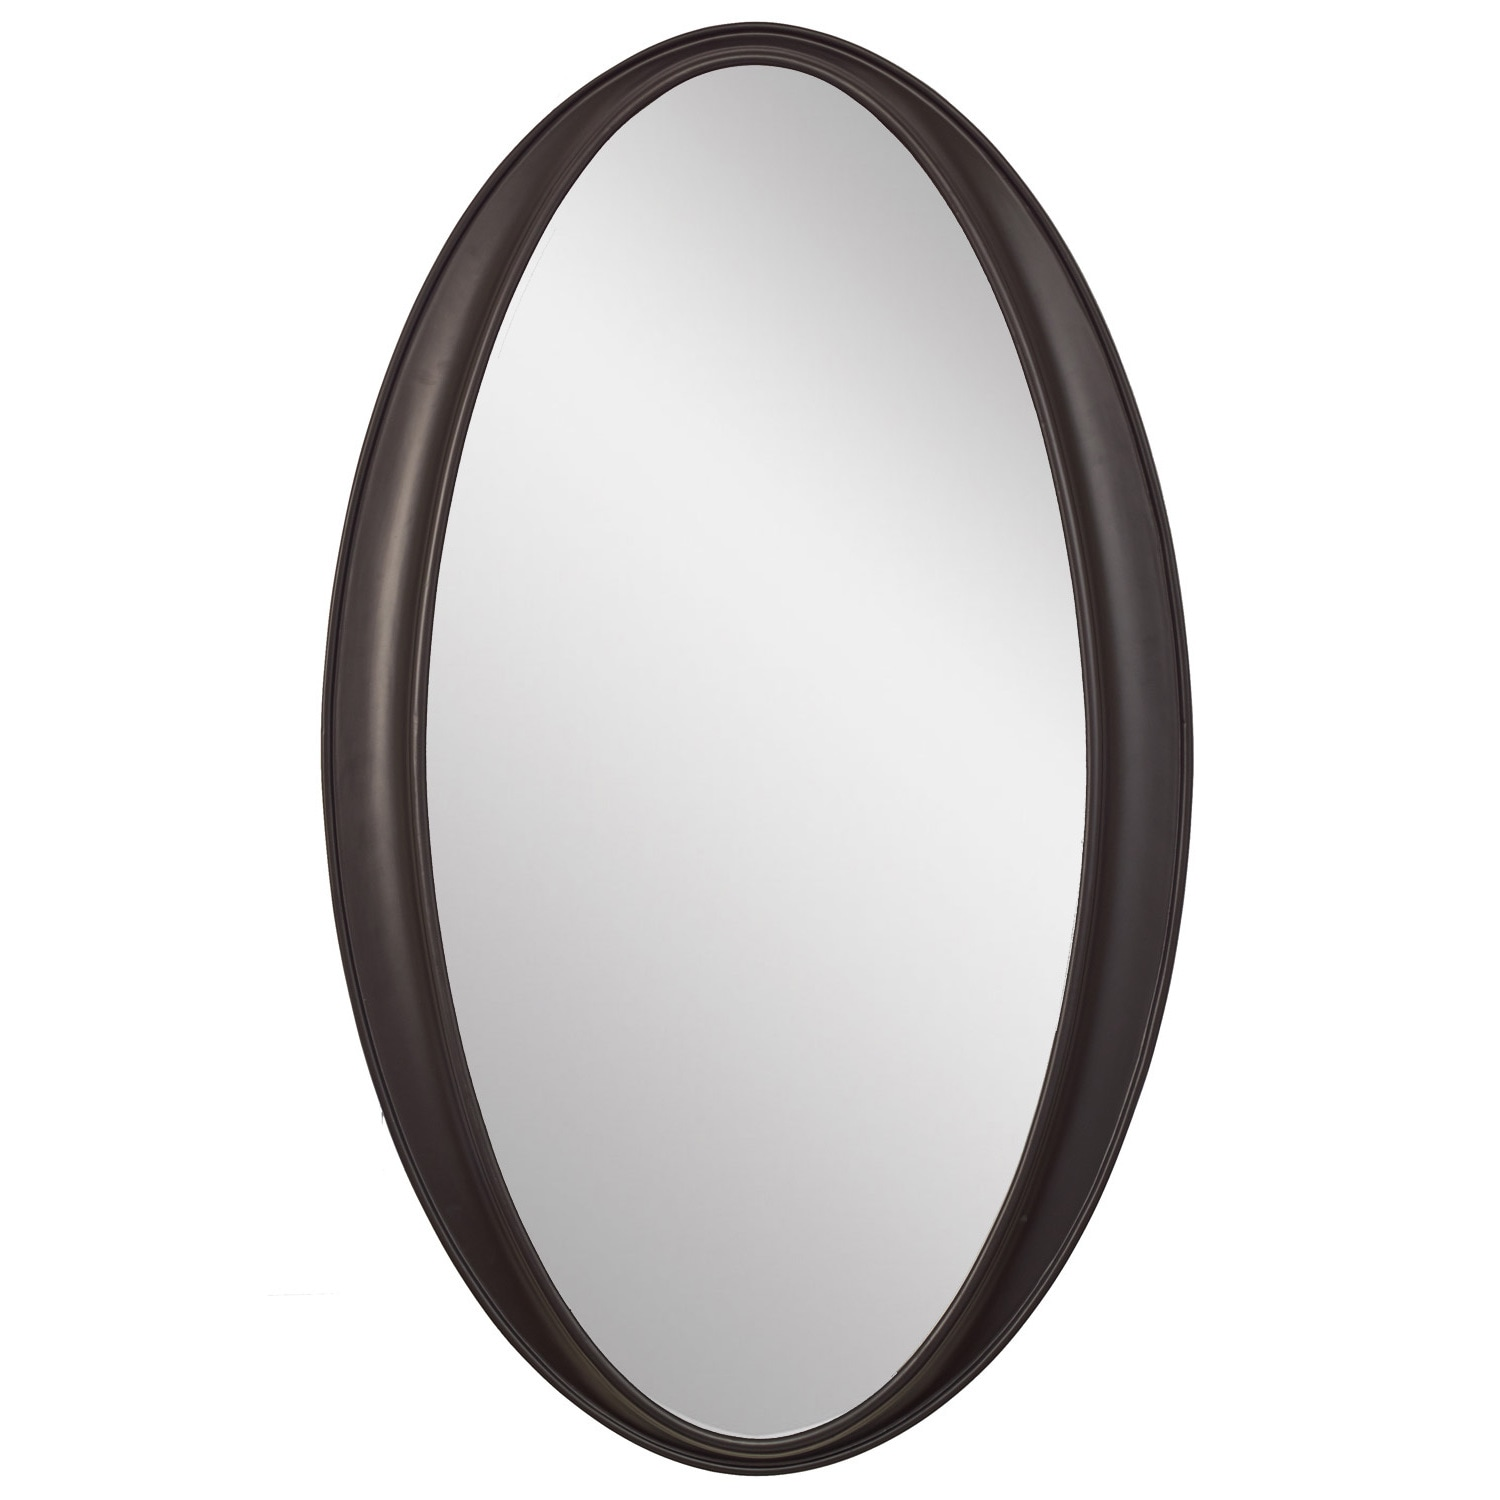 Classic Wall Mirror Beveled Glass Hanging Oval Plastic Frame Black ...